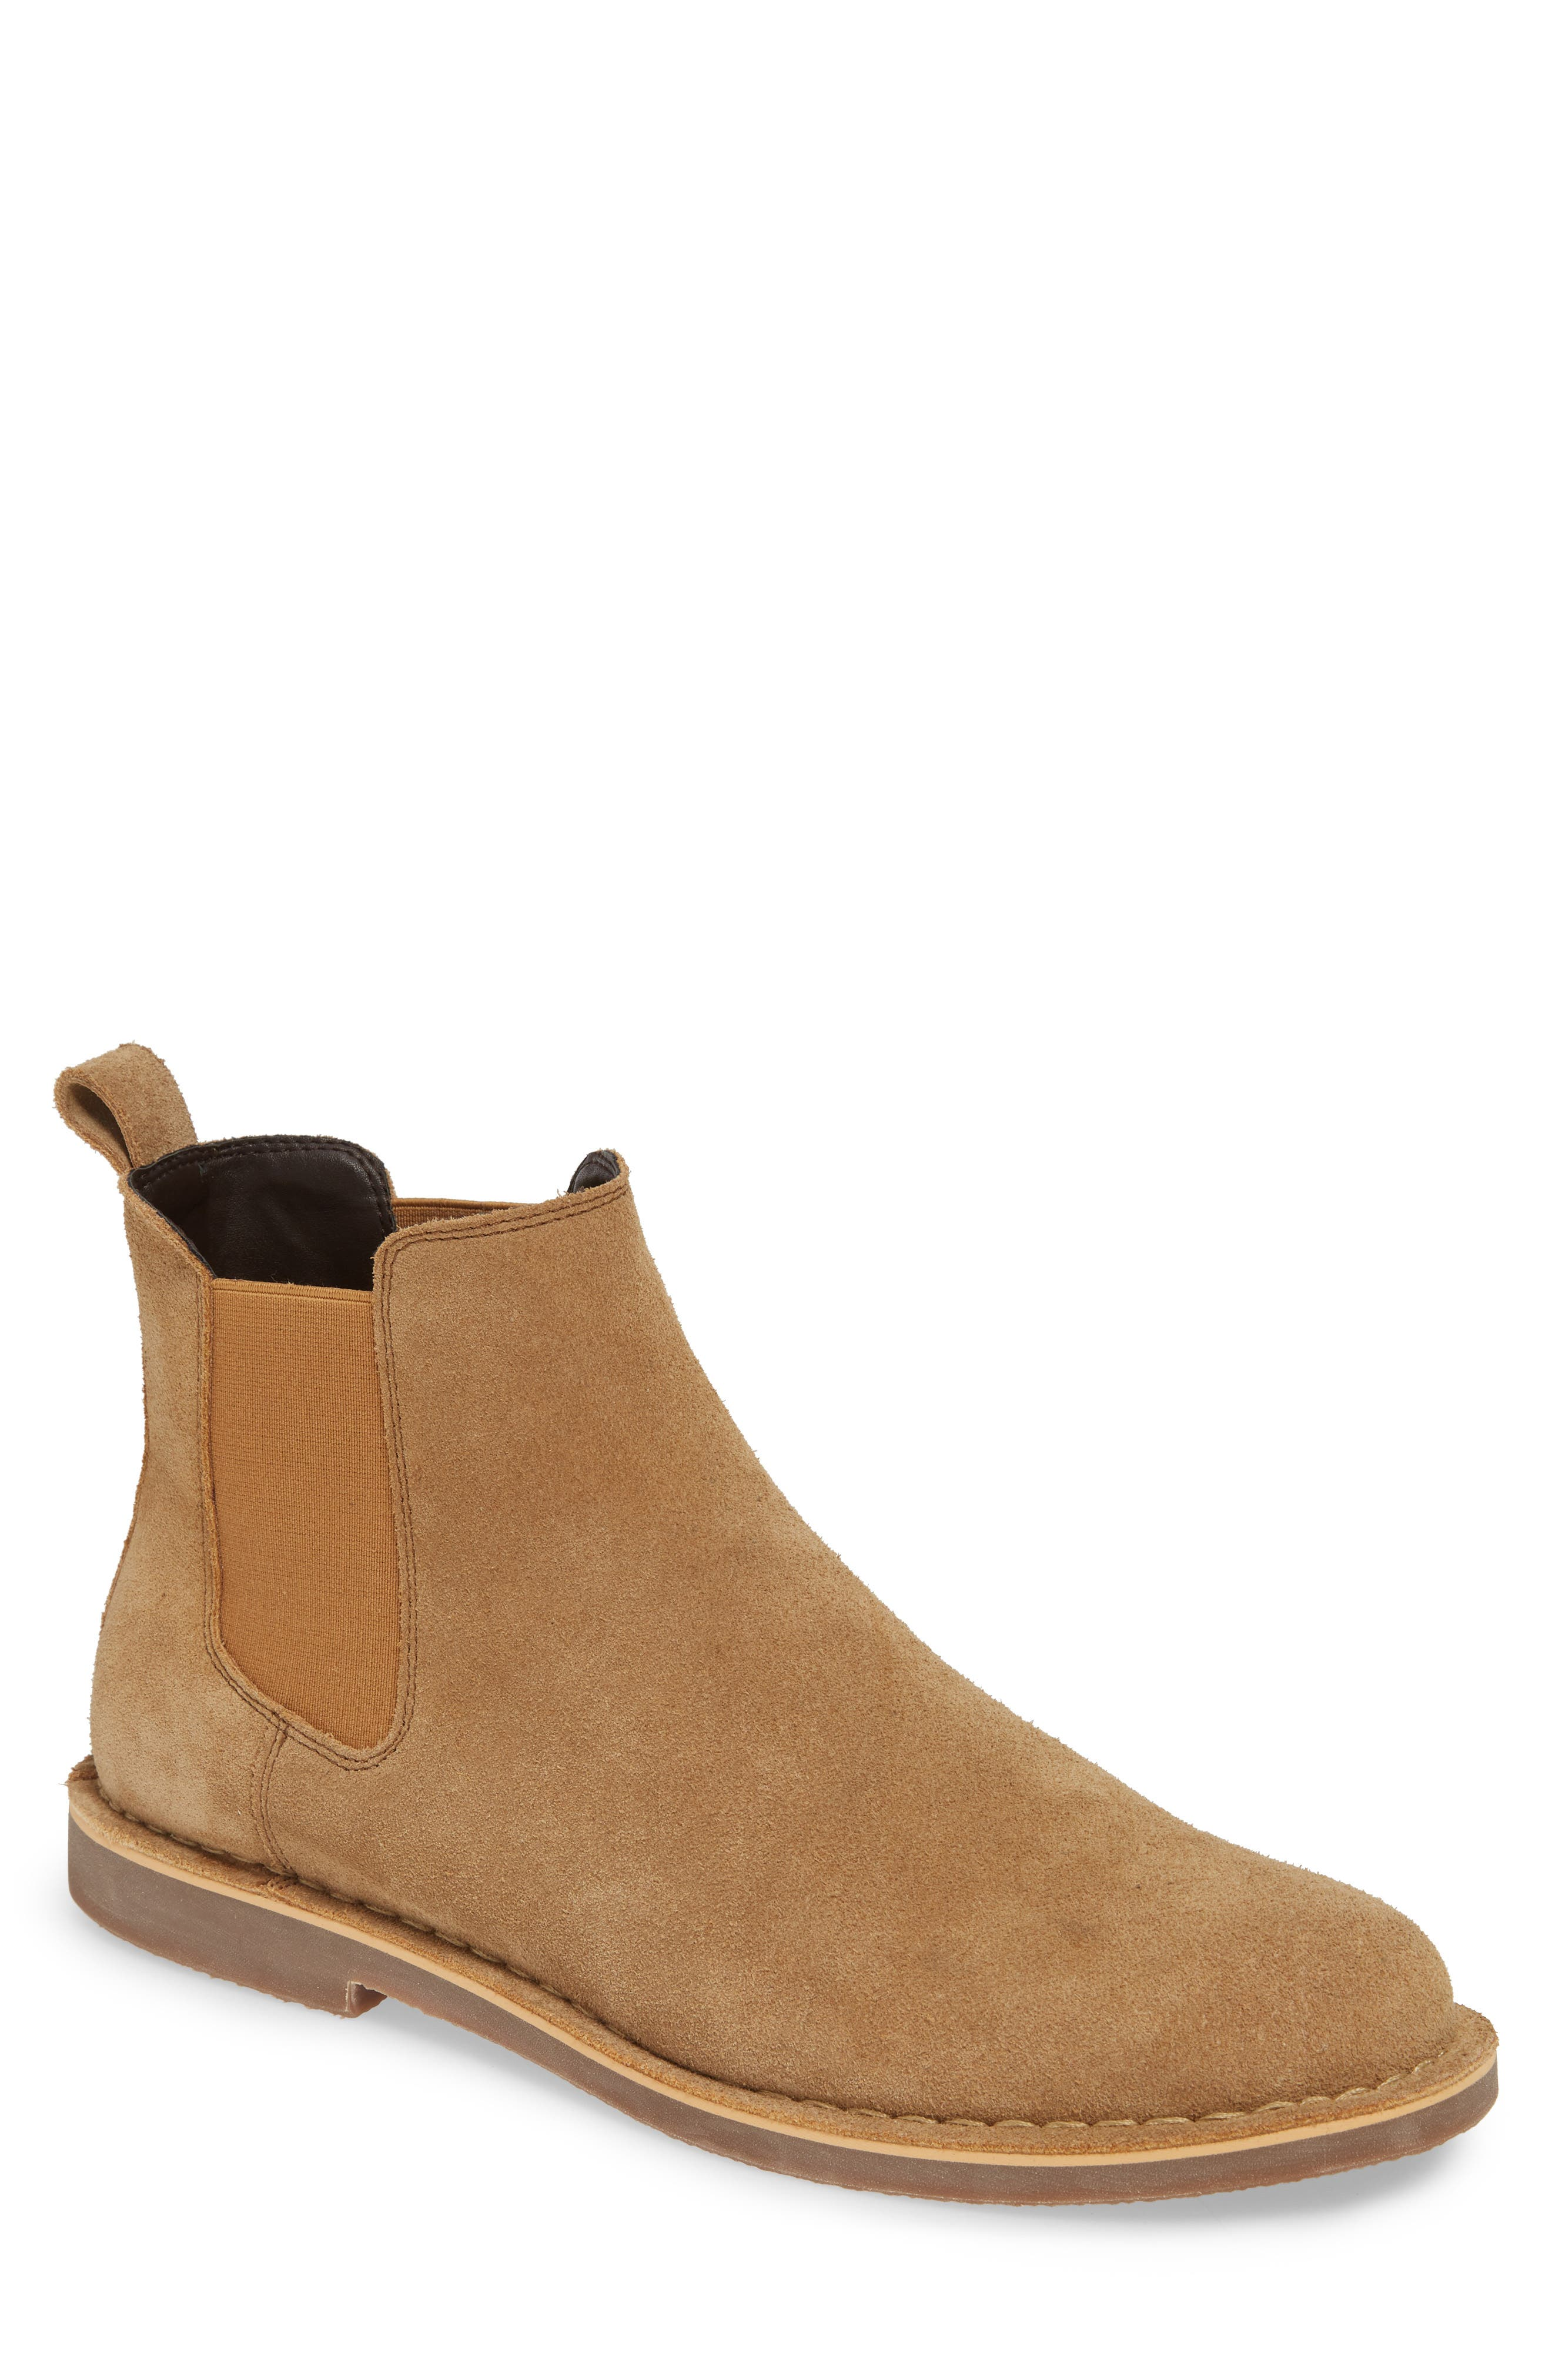 The Rail Payson Chelsea Boot